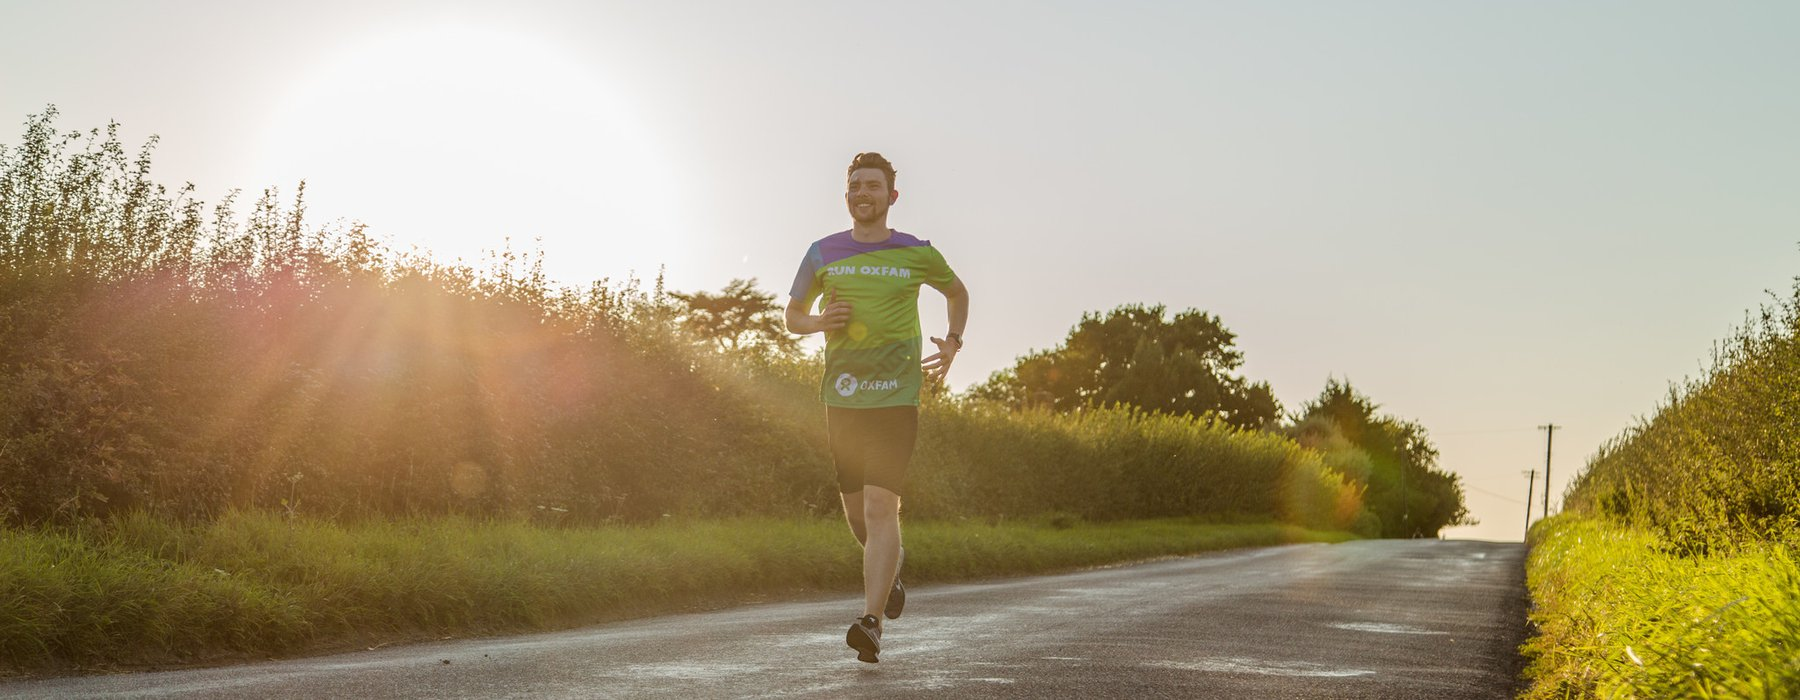 Runner Olly wearing Oxfam shirt training on road by fields.